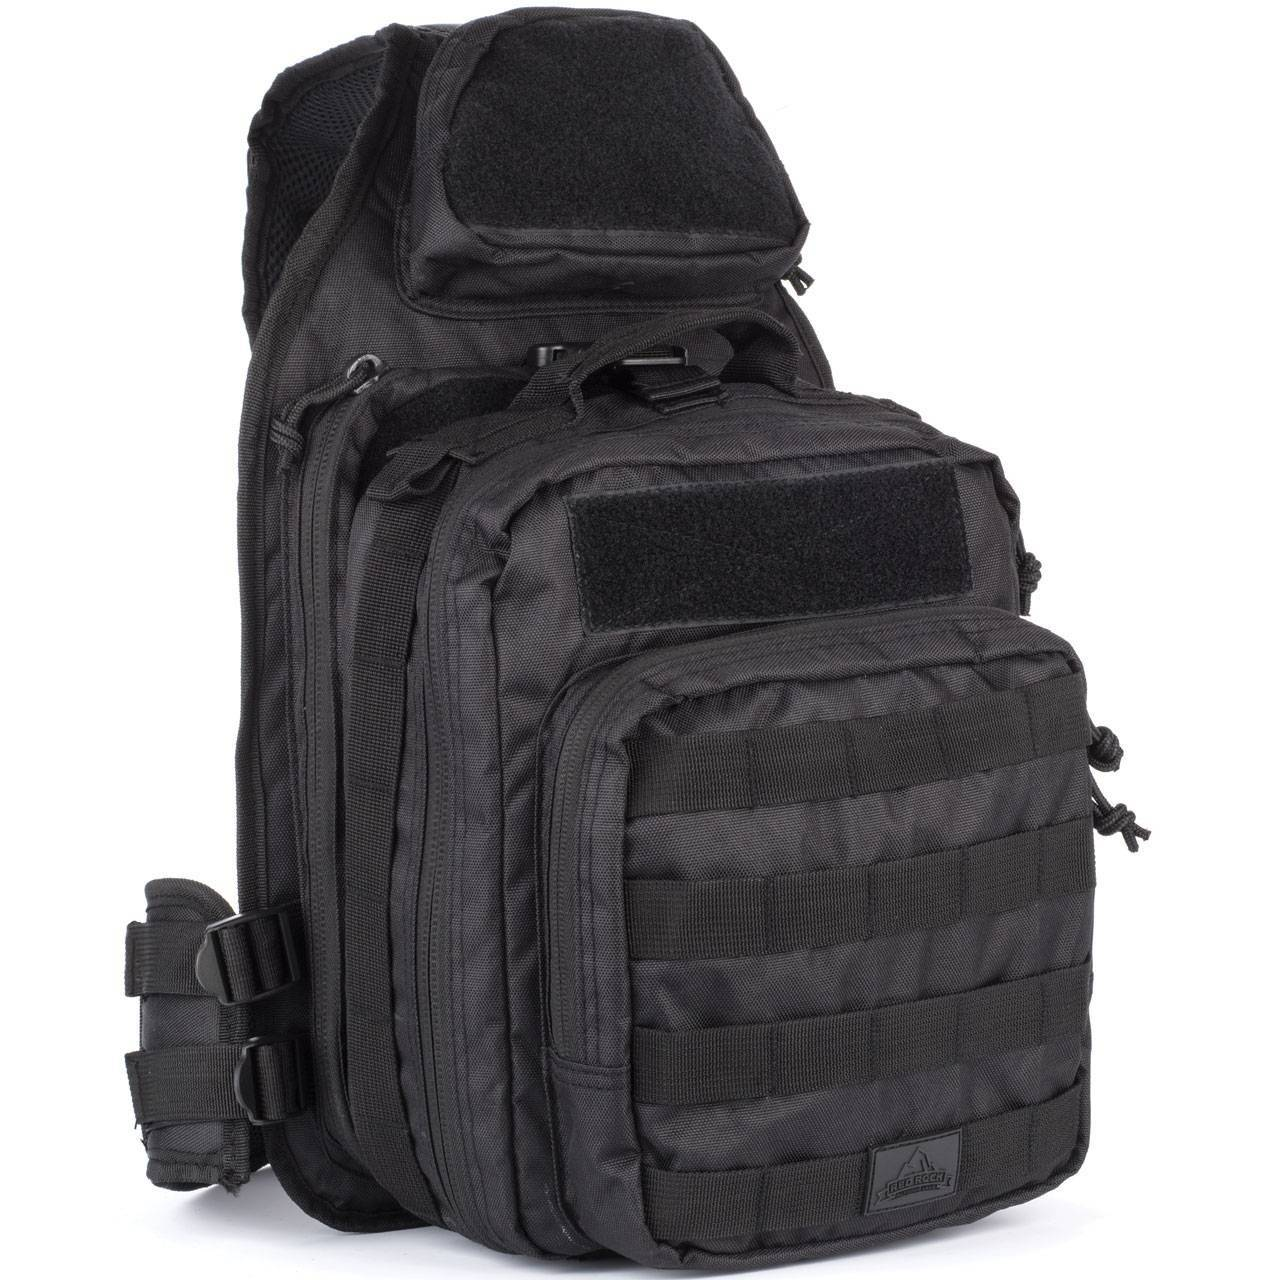 Red Rock Recon Sling Pack Black